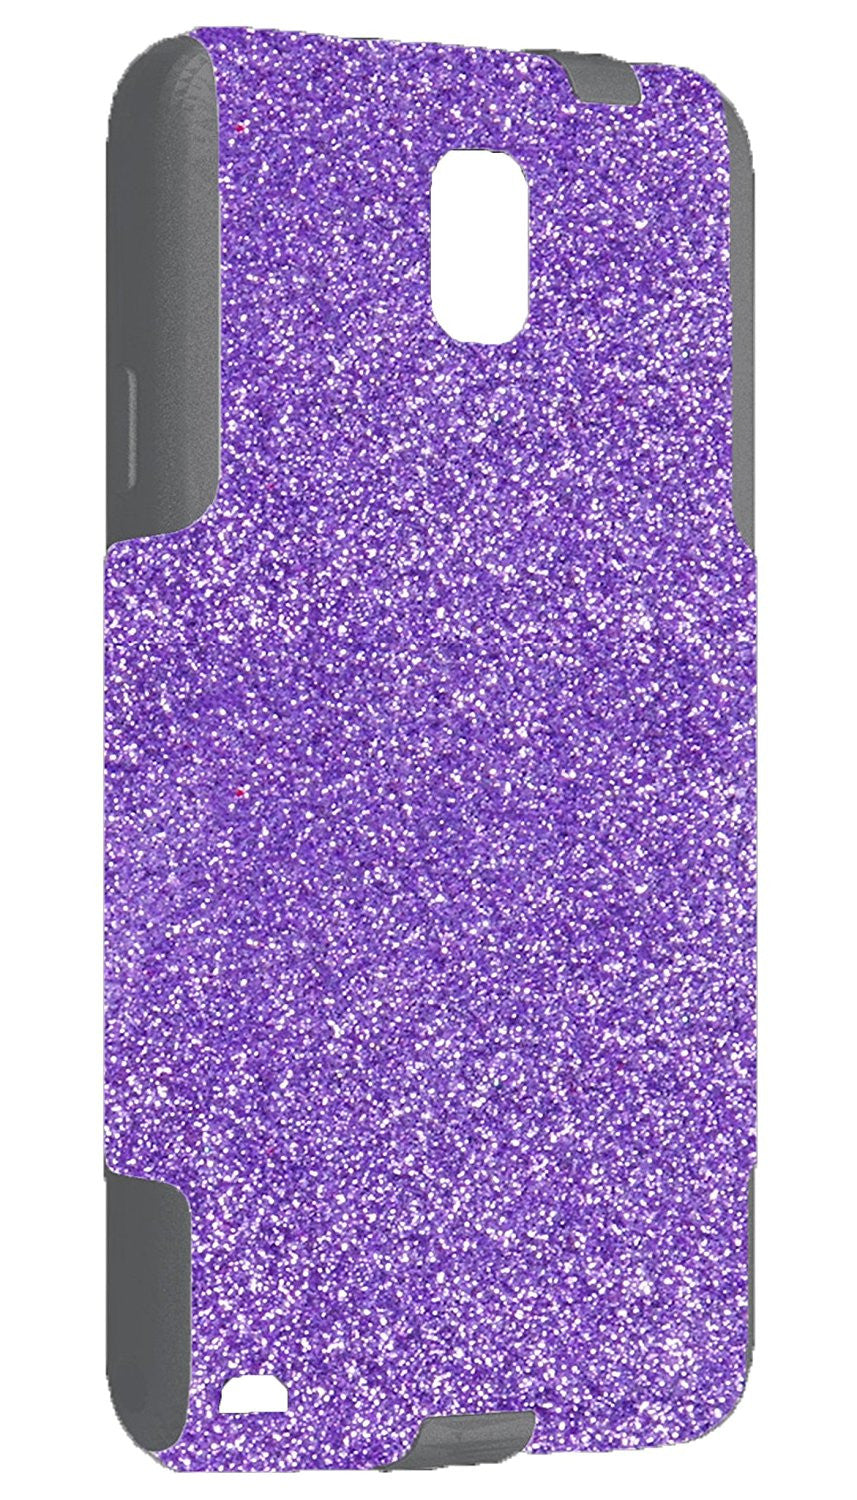 innovative design 6ac6e 2caaf OtterBox Commuter Series Case for Galaxy Note 3 - Custom Glitter Case for  Galaxy Note 3 - Orchid/Grey